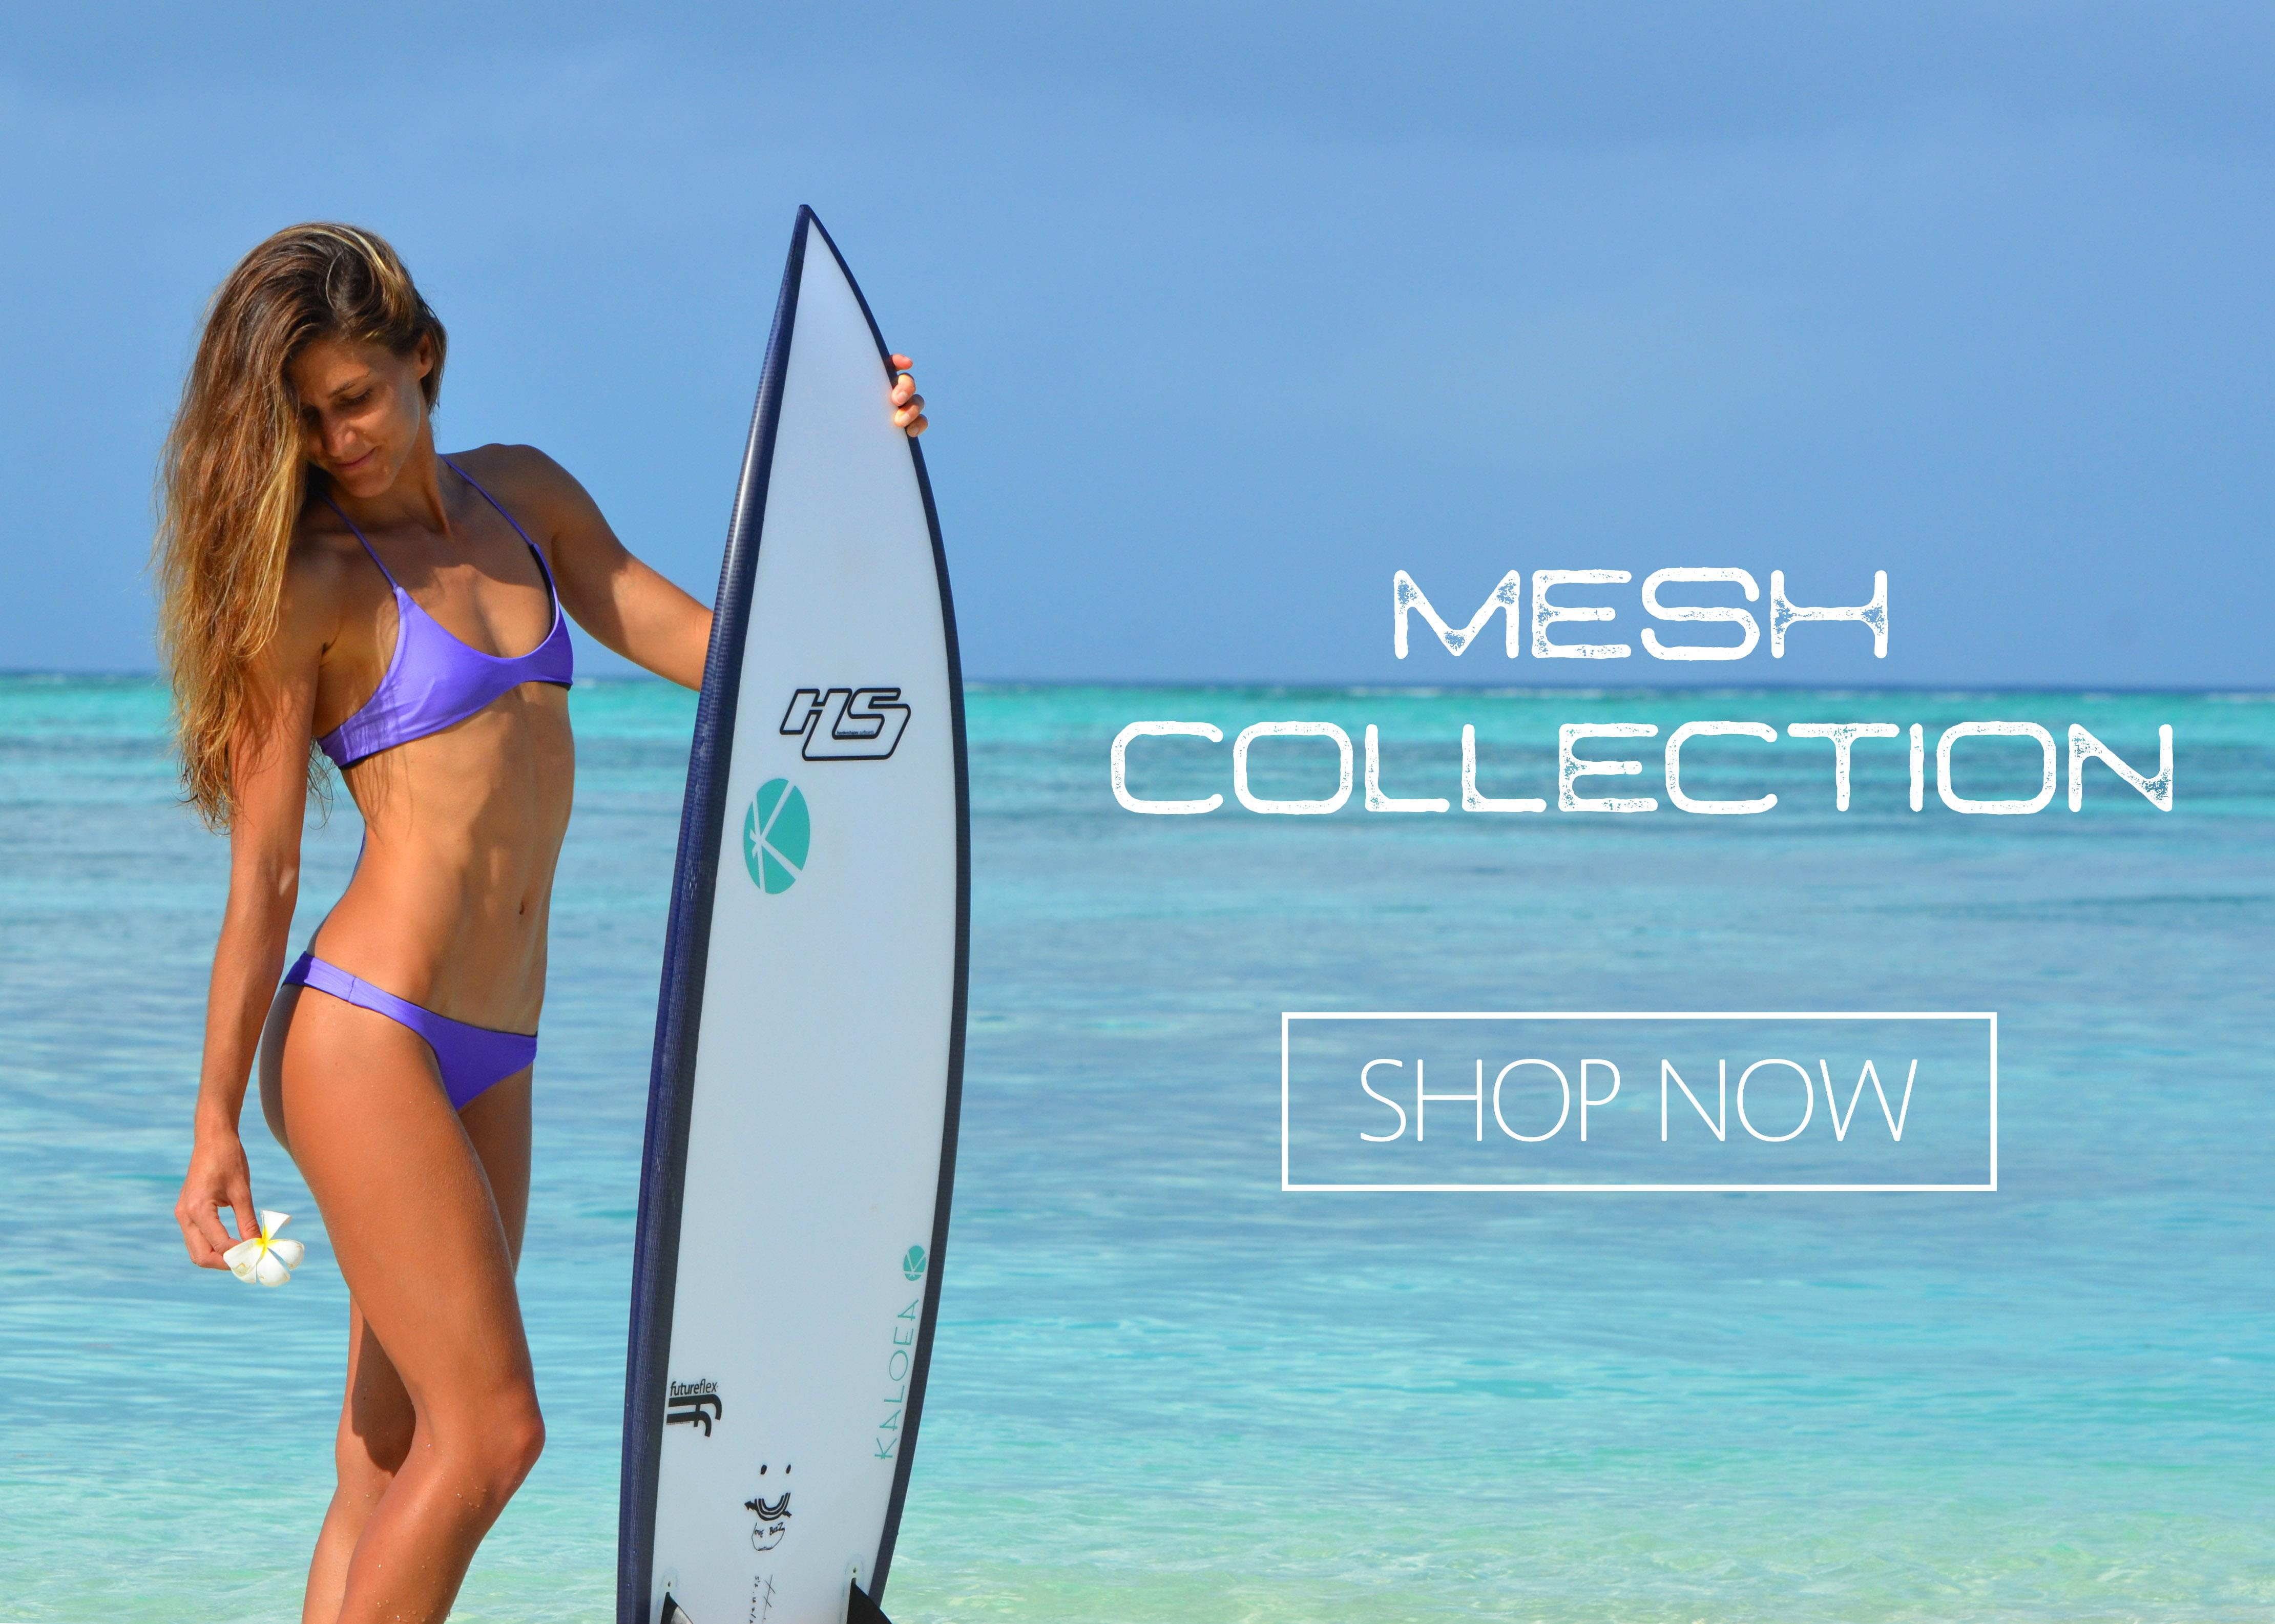 Kaloea Surf Bikini Mesh Collection Shop Now